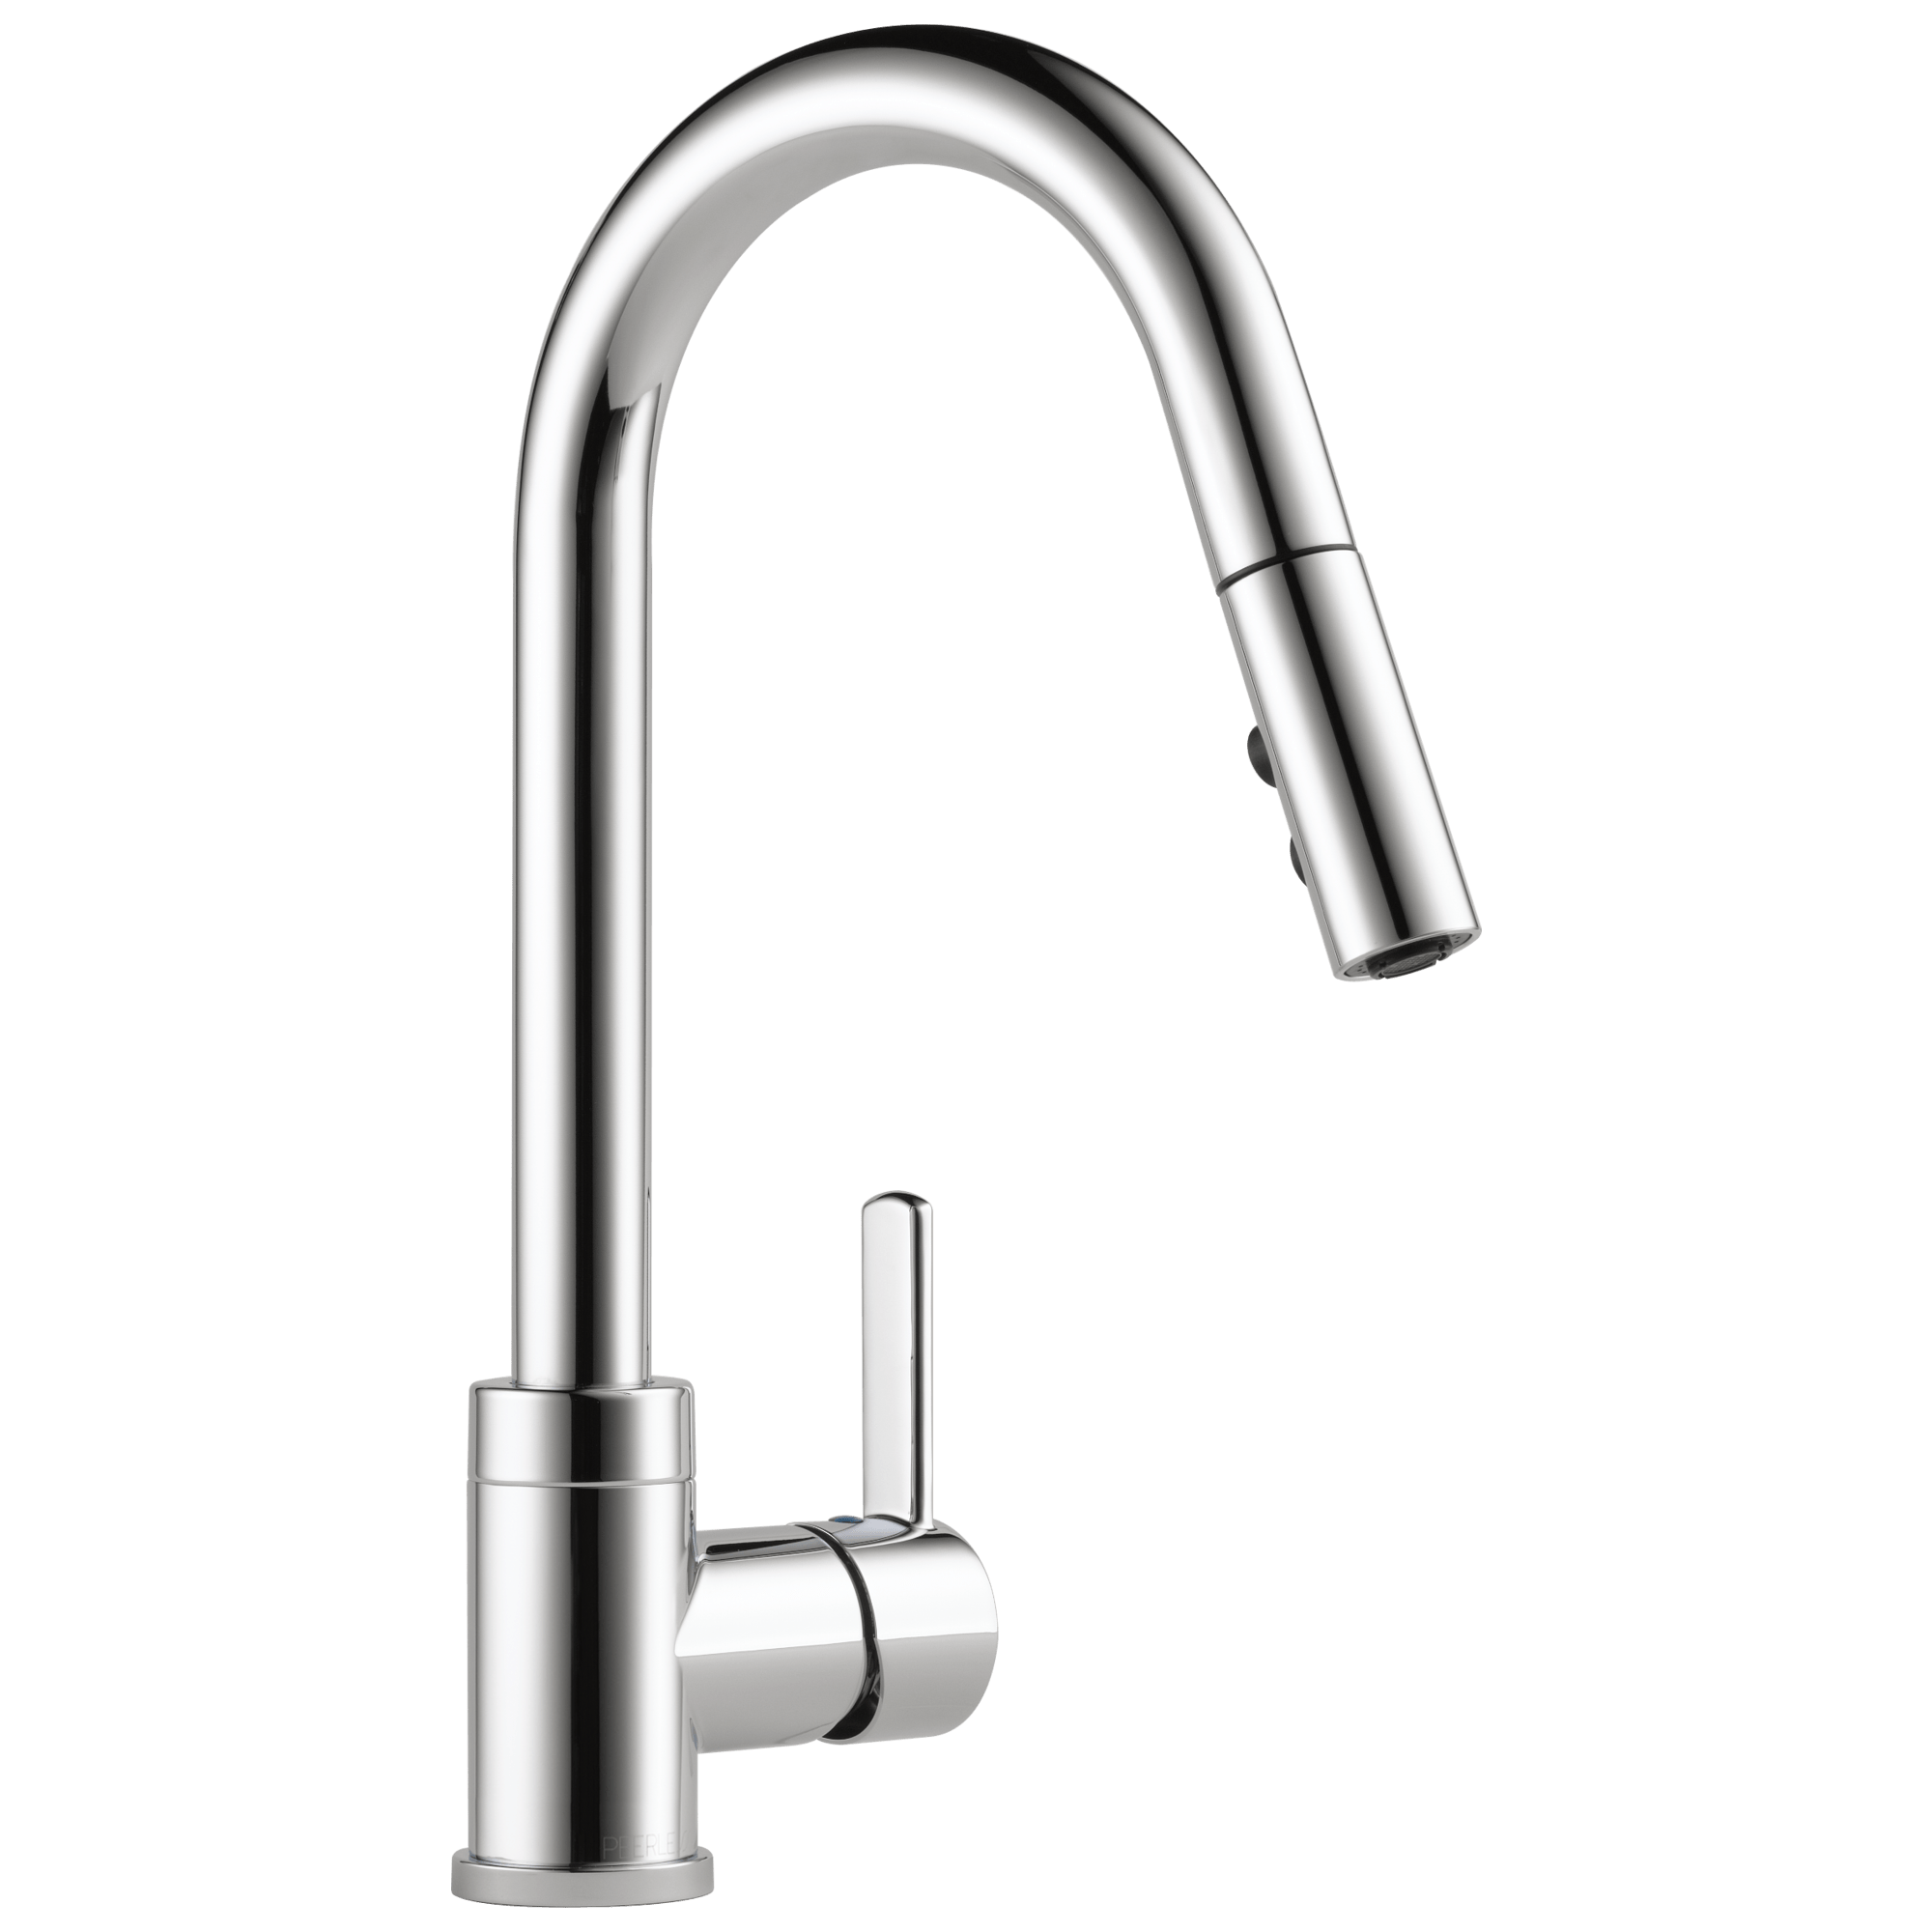 peerlessfaucet delta linden kitchen faucet Single Handle Pull Down Kitchen Faucet